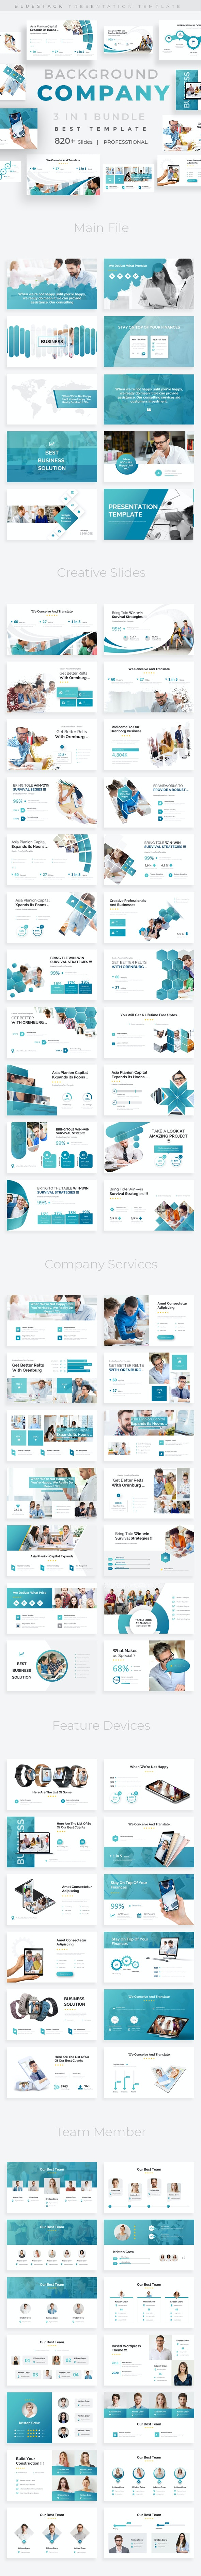 Company Background 3 in 1 Pitch Deck Bundle Keynote Template - Business Keynote Templates